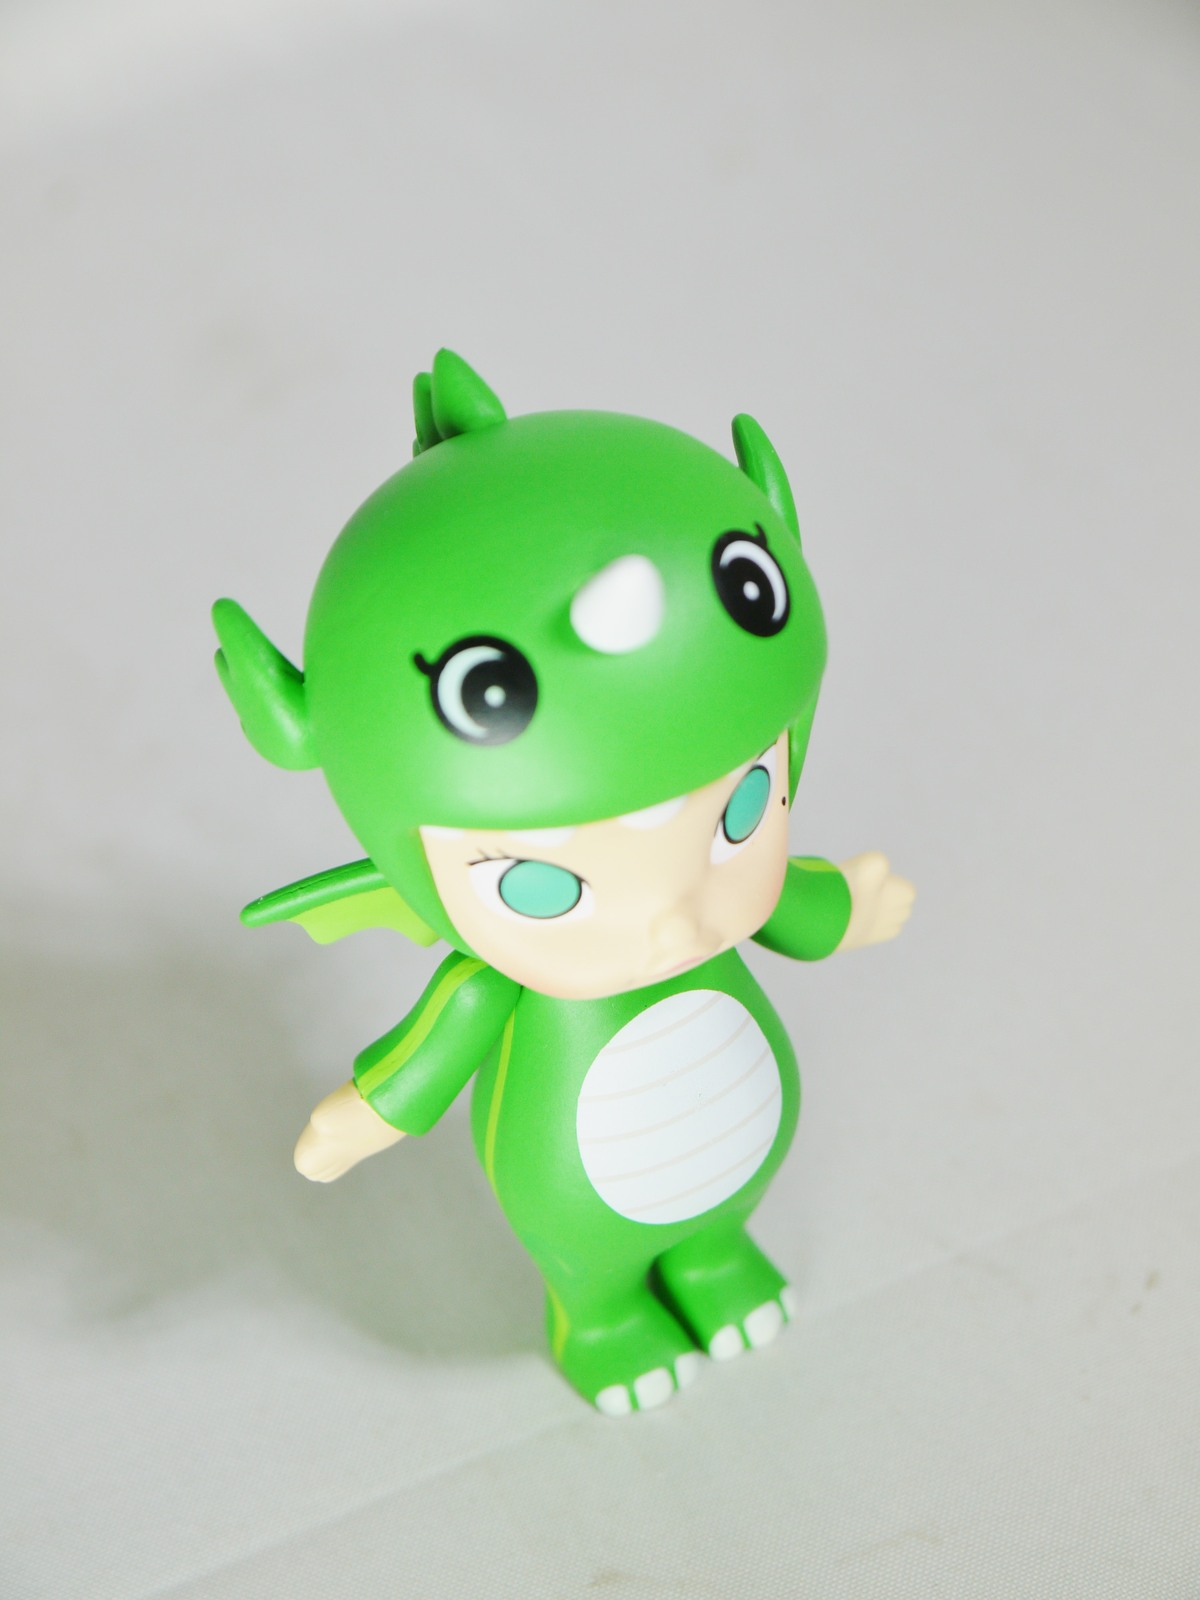 POP MART Kennyswork BLOCK Little Molly Chinese Zodiac Dragon Green Mini Figure